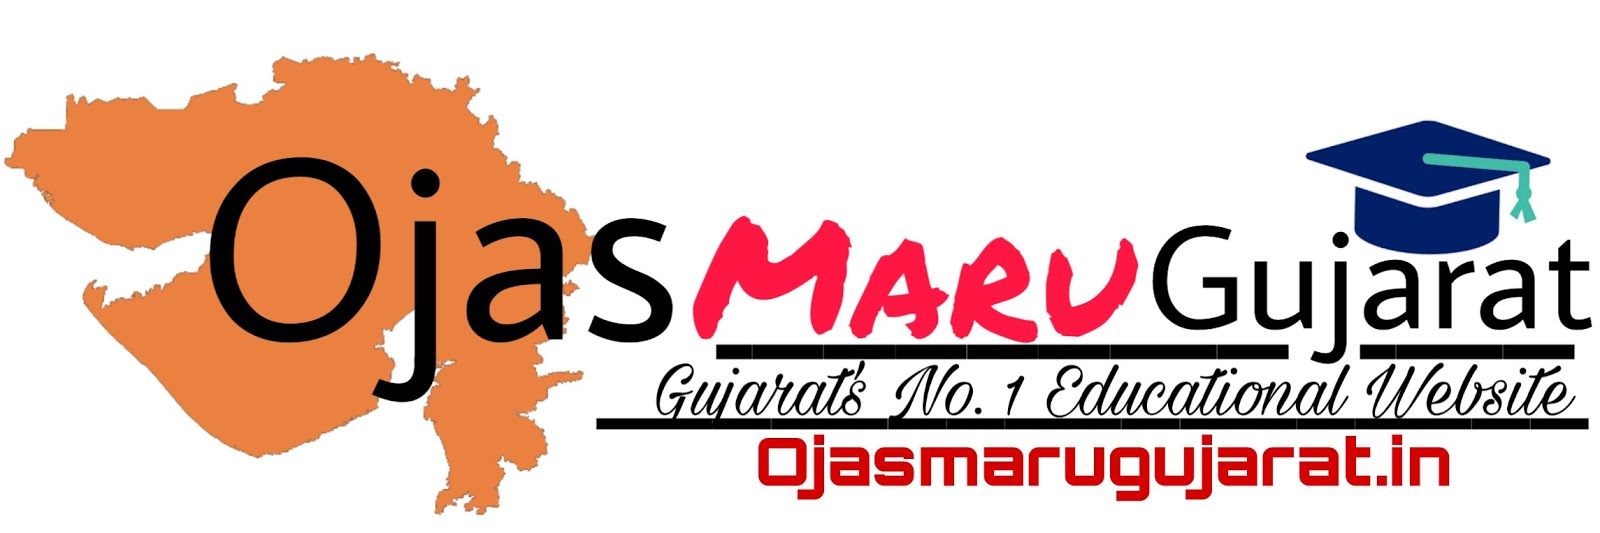 Ojas Maru Gujarat - Maru Gujarat, Ojas Jobs, Educational website